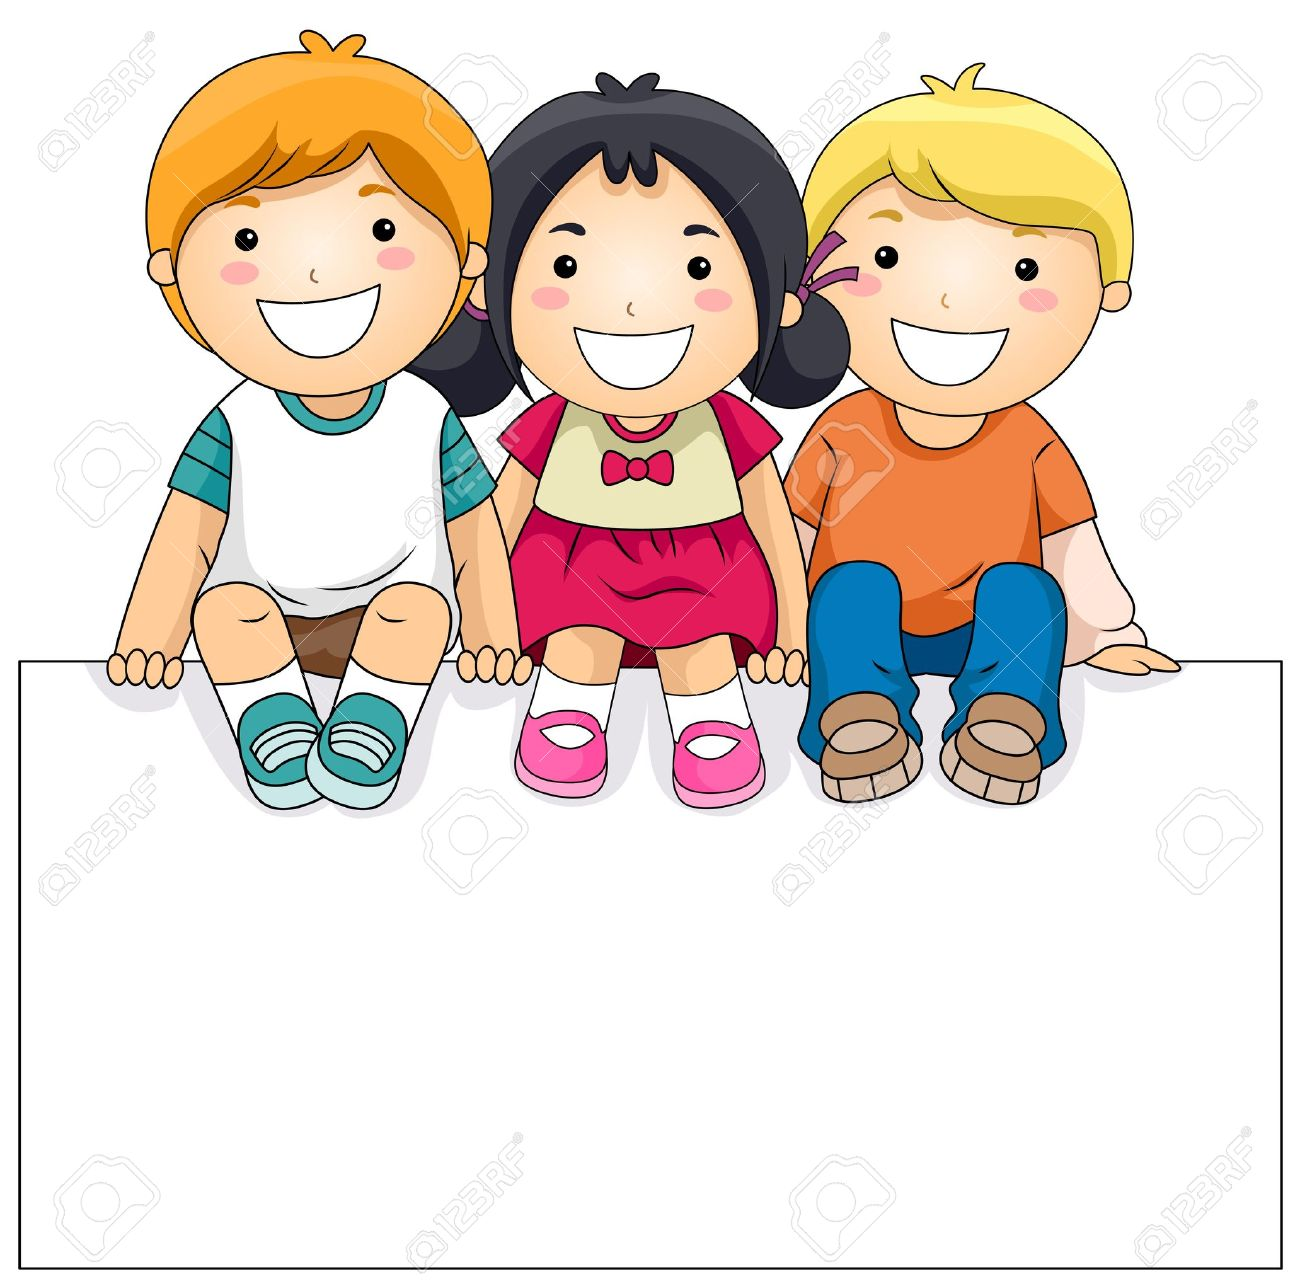 children clipart kids with a clipart panda free clipart images rh clipartpanda com child clipart images child reading clipart images